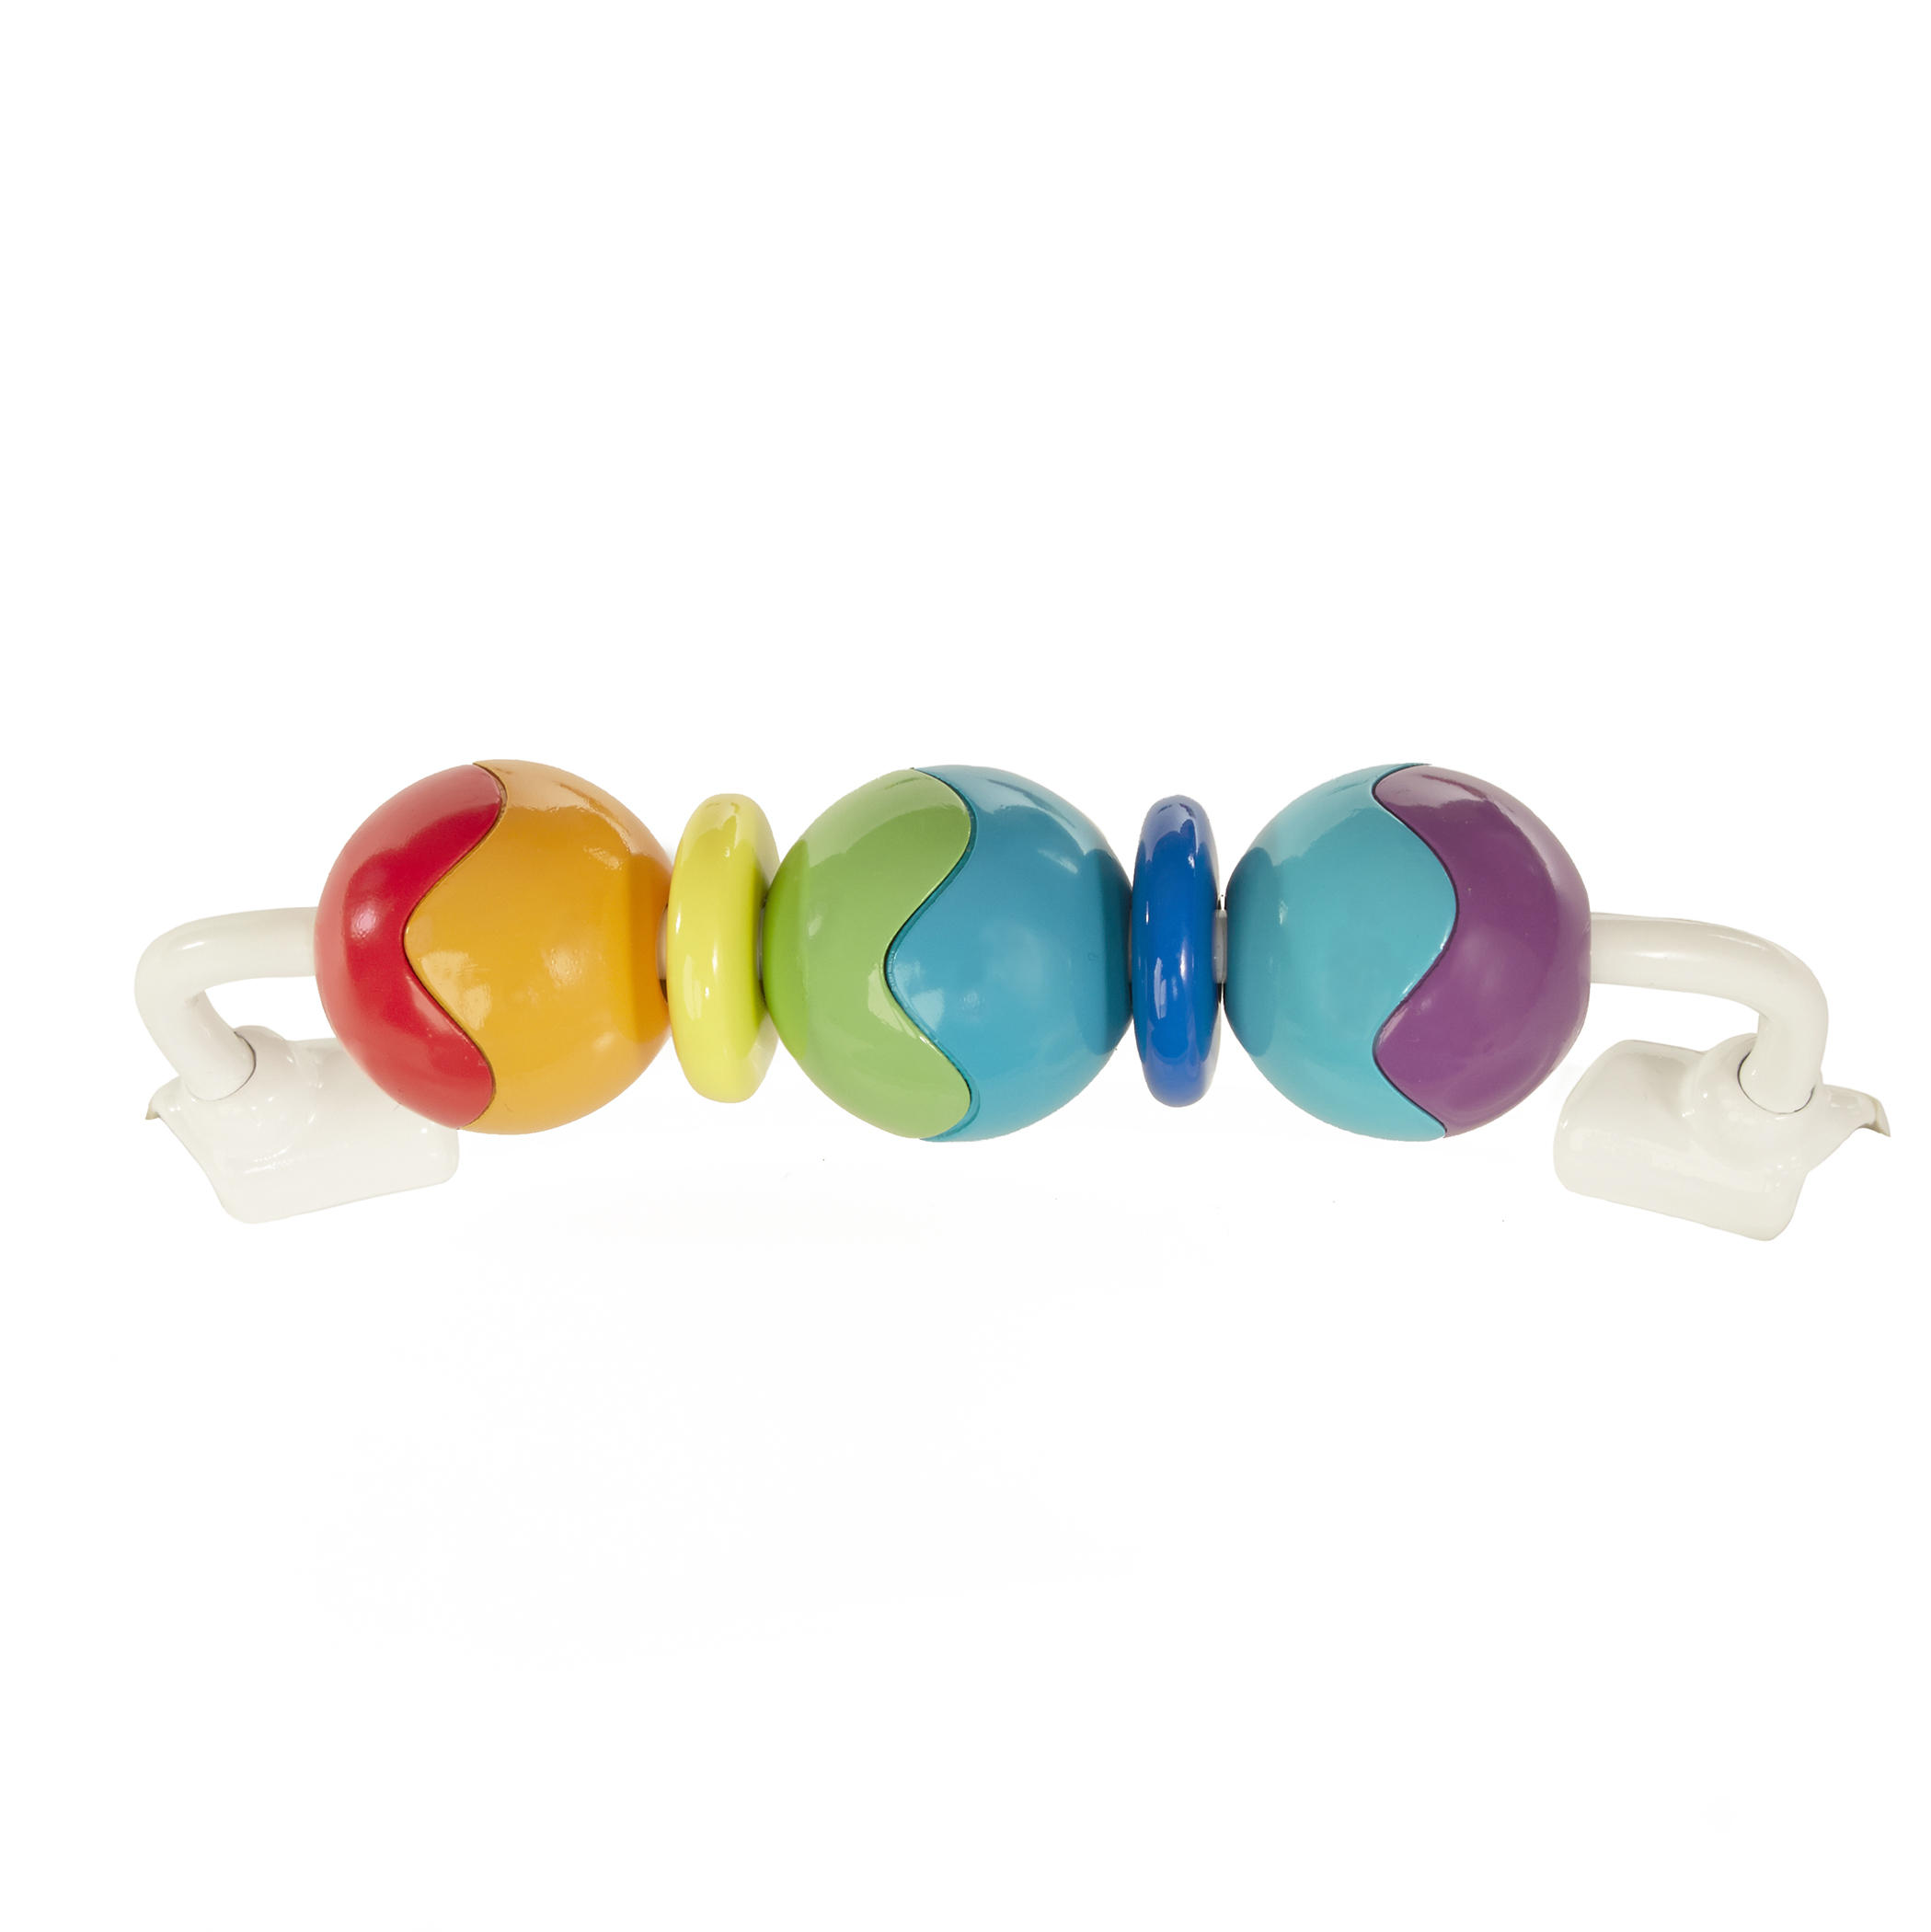 Slide-n-Twirl™ Bead Chaser Toy